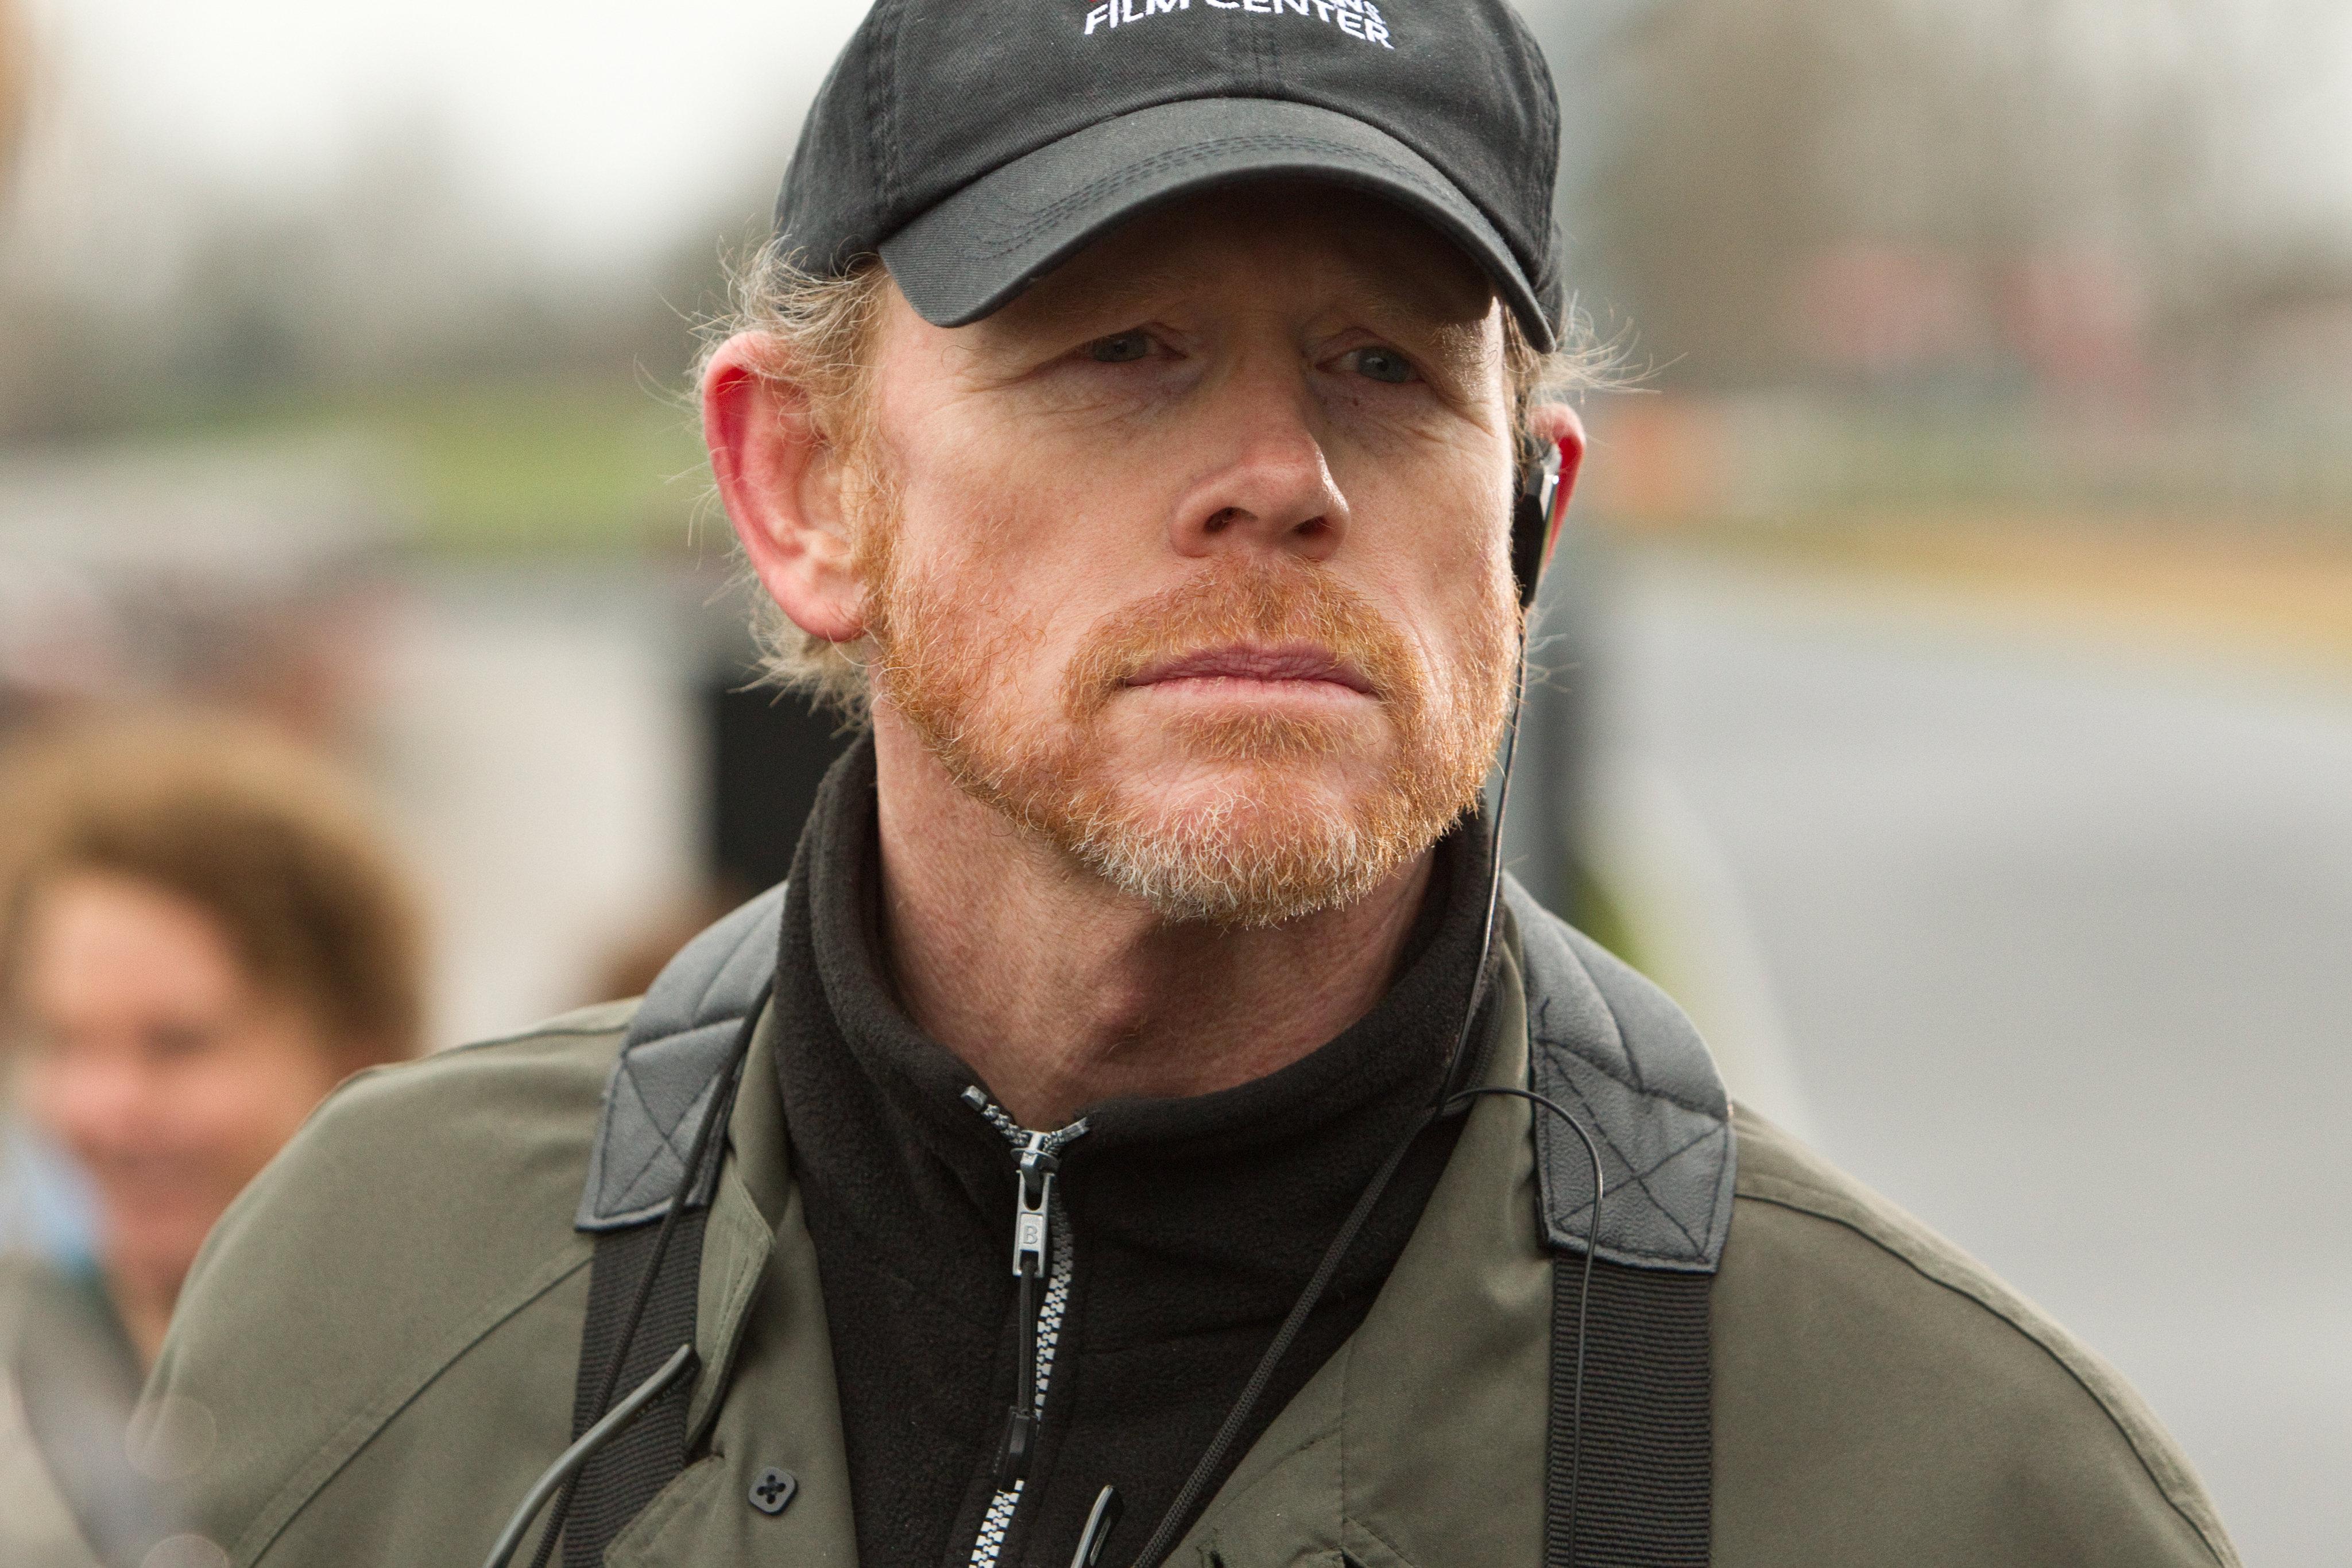 Ron Howard Talks About Assuming Director Duties on Han Solo